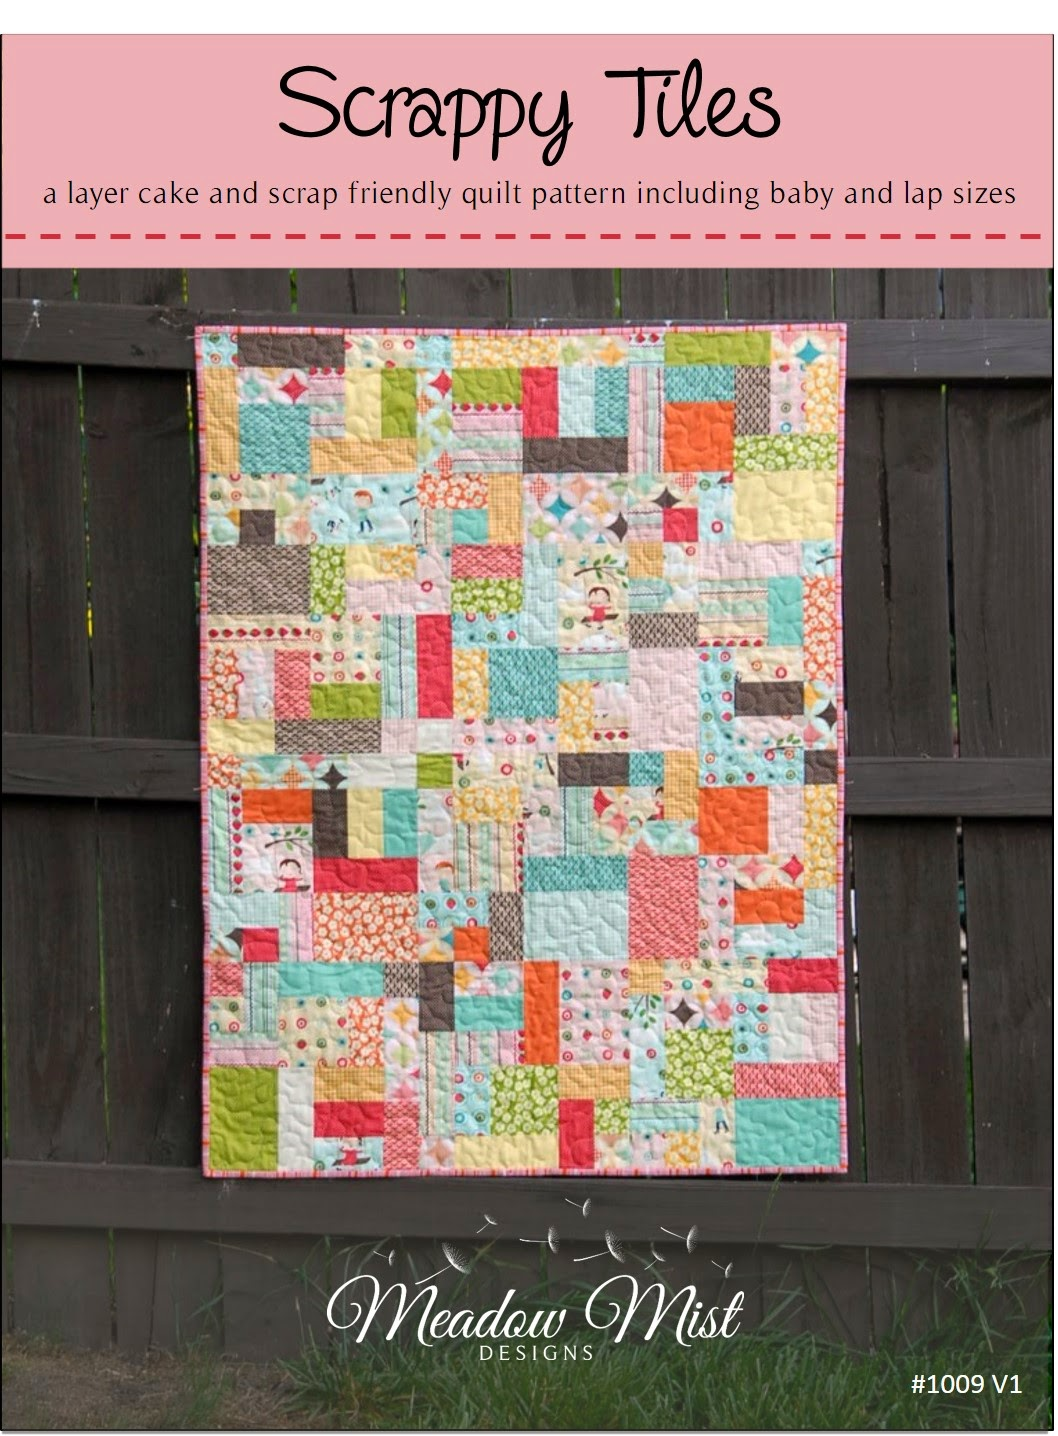 Meadow Mist Designs Scrappy Tiles Pattern Now Available